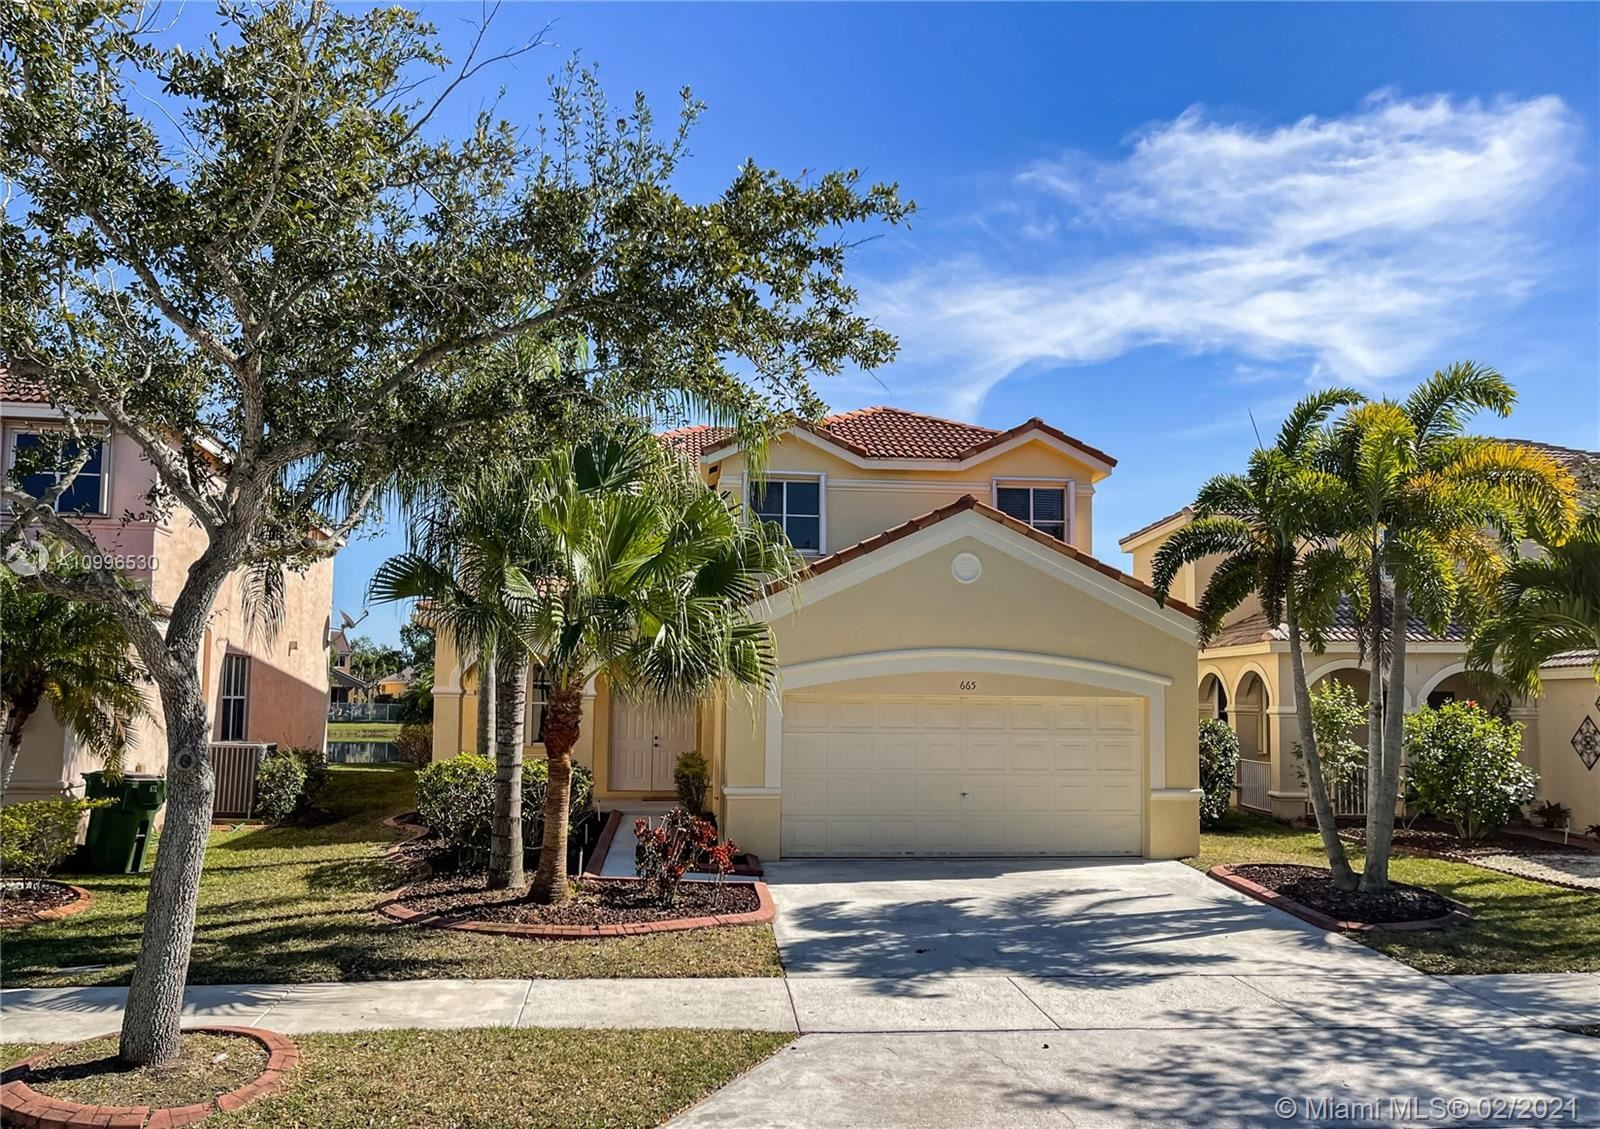 665 Vista Meadows Dr, Weston, FL 33327 - #: A10996530